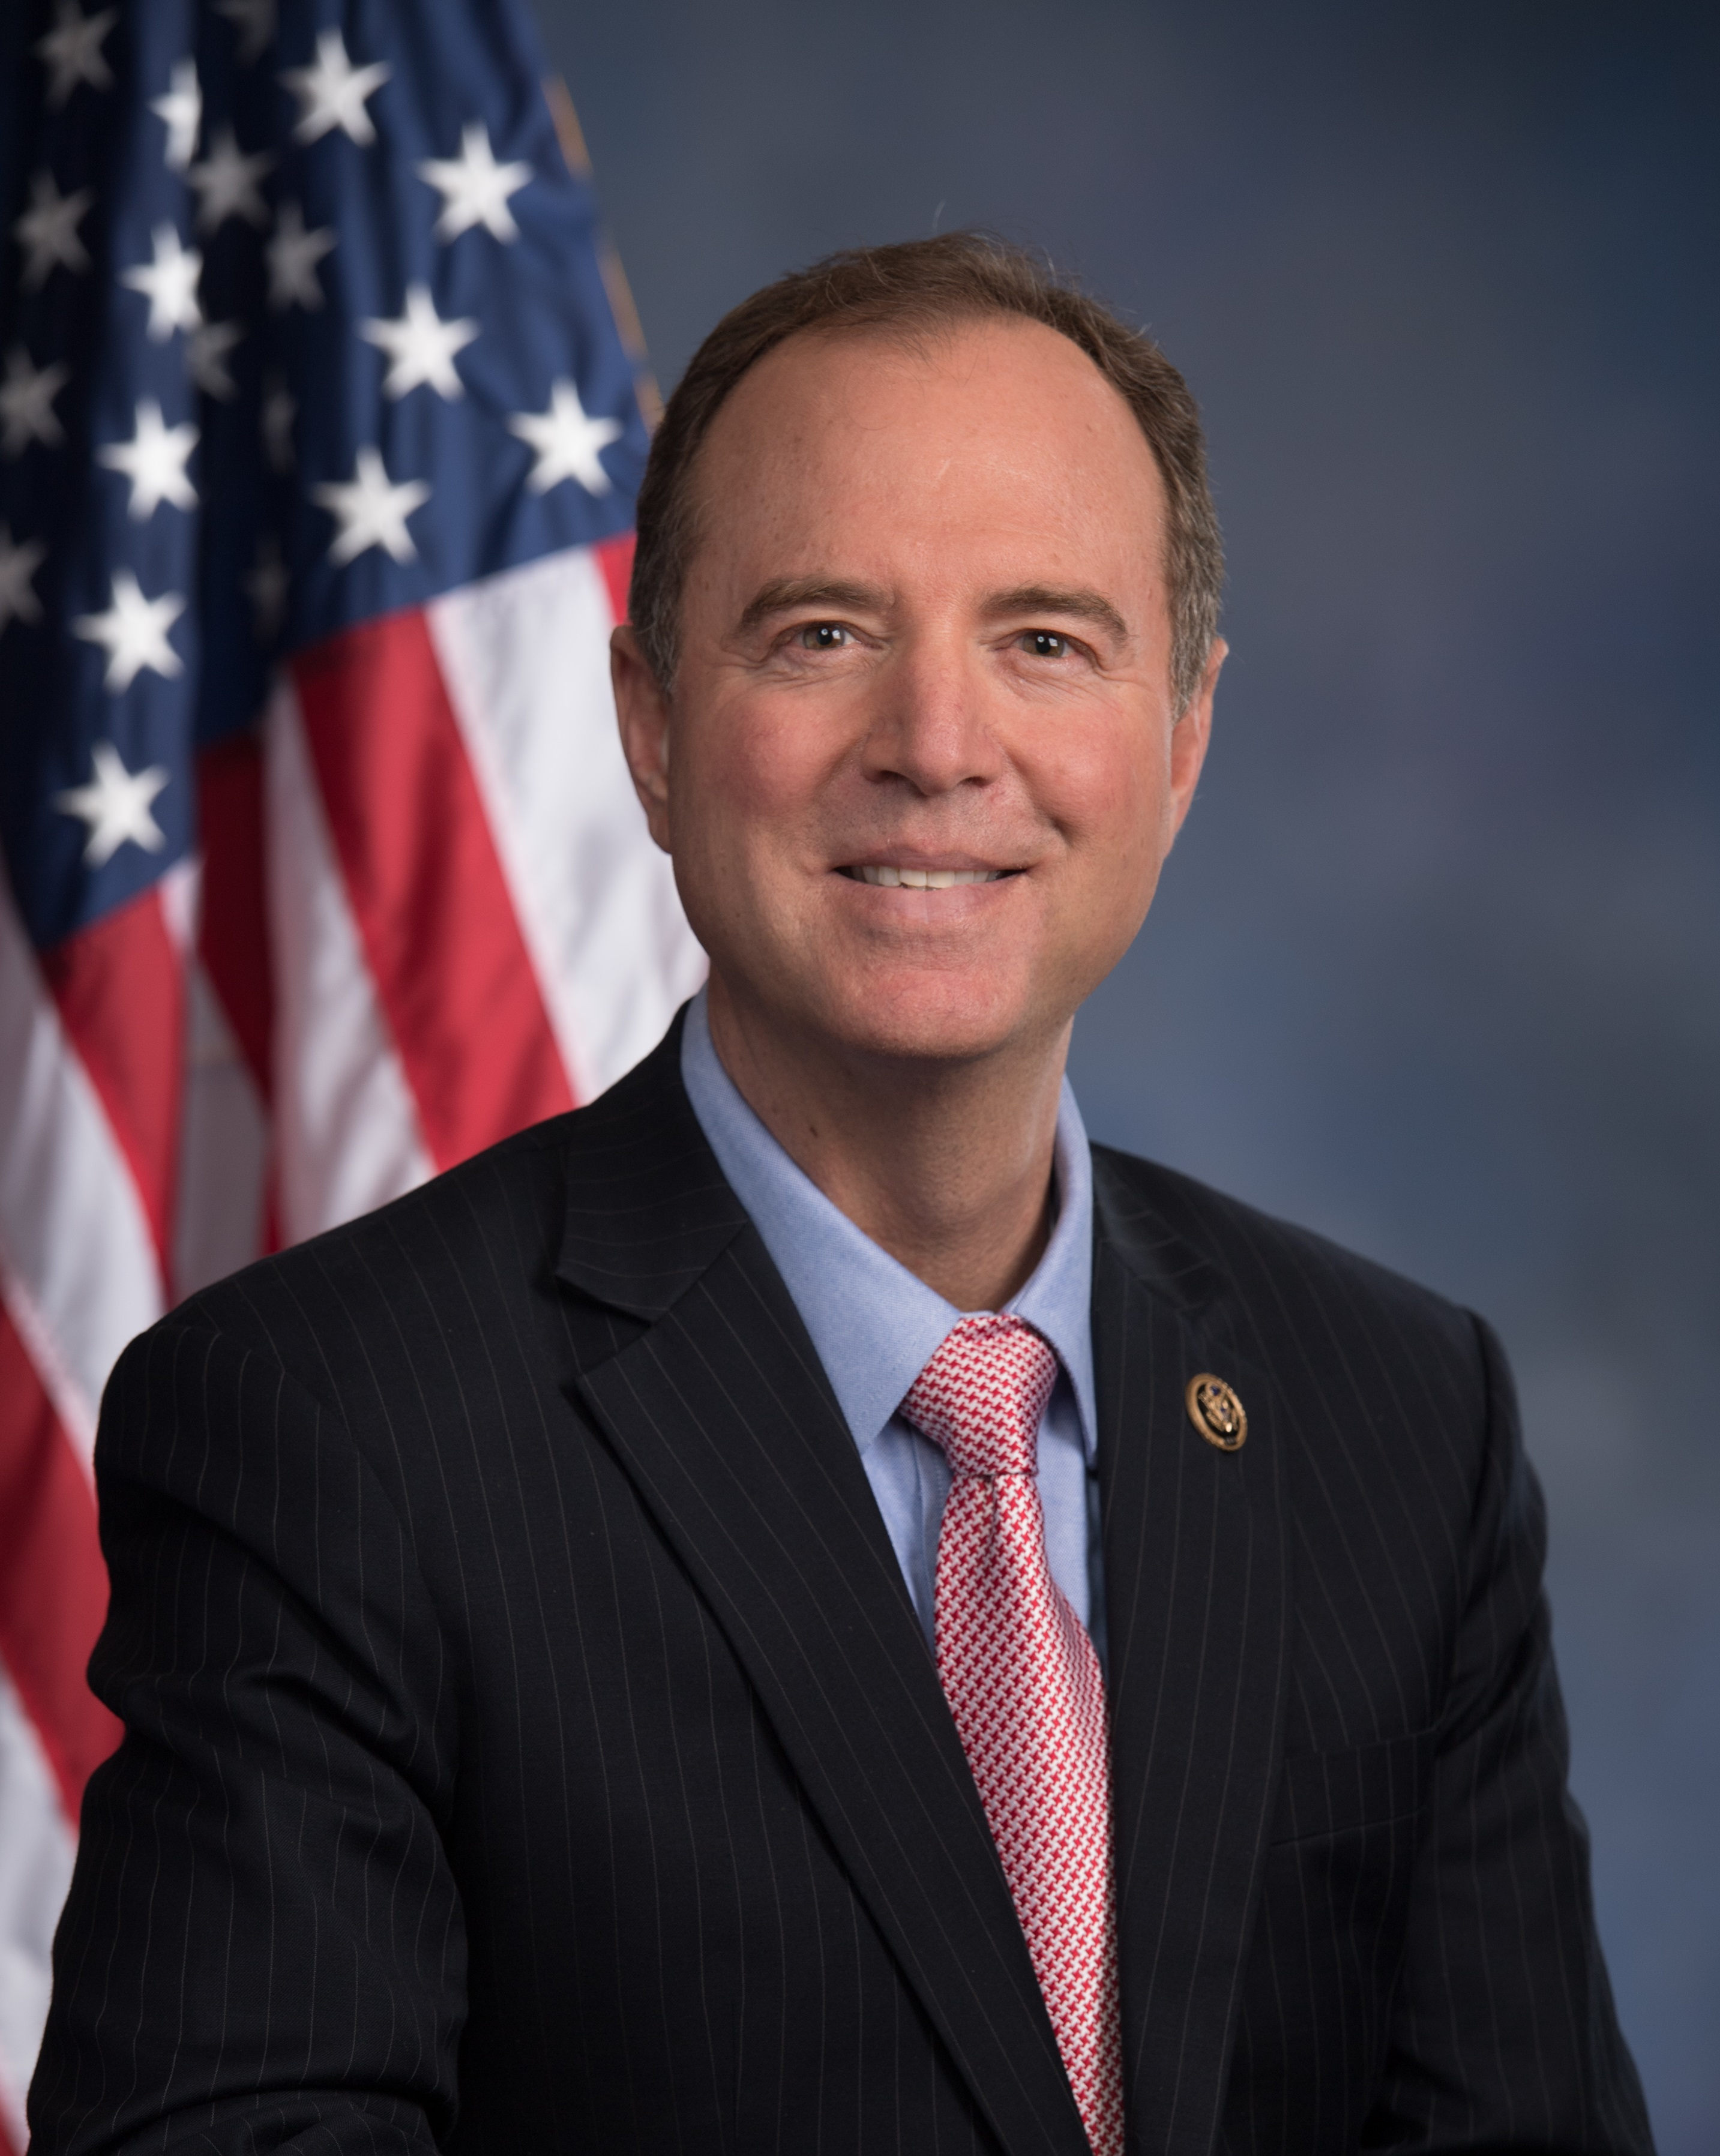 Rep. Adam Schiff Headshot